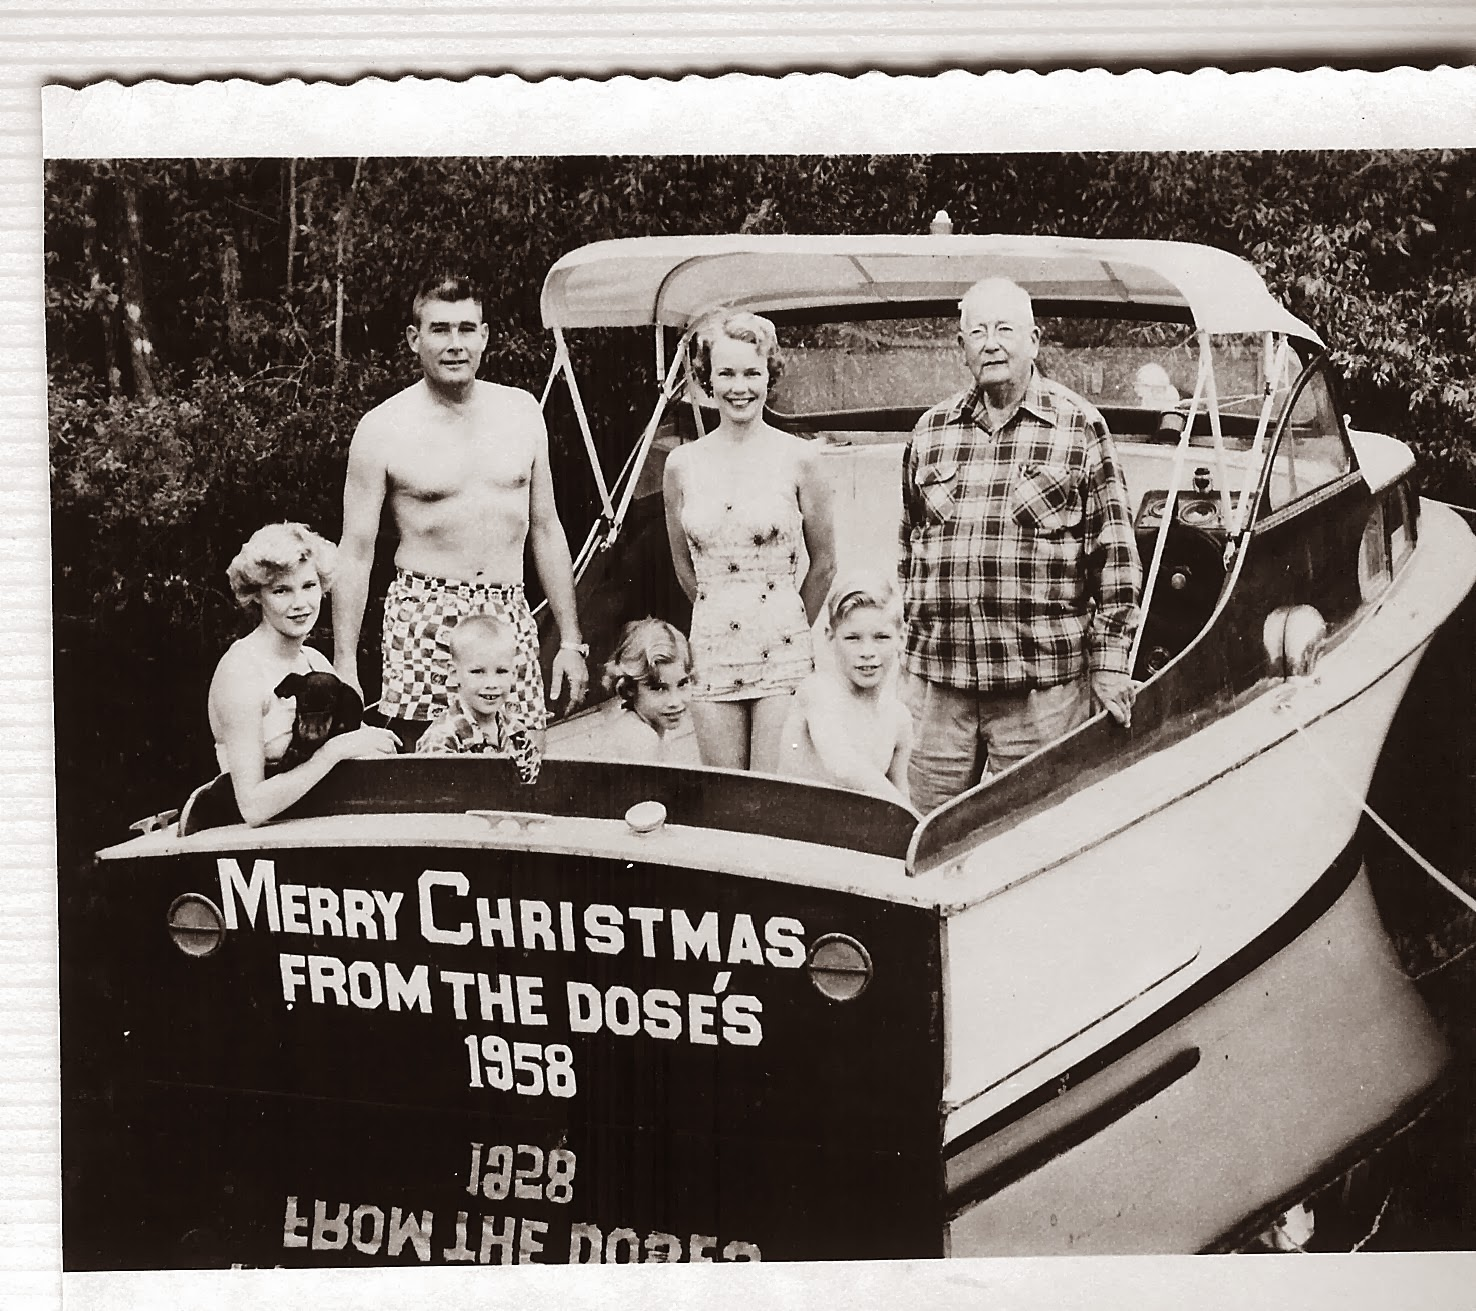 Photo Christmas Cards: Why They are Awesome | Catholic All Year